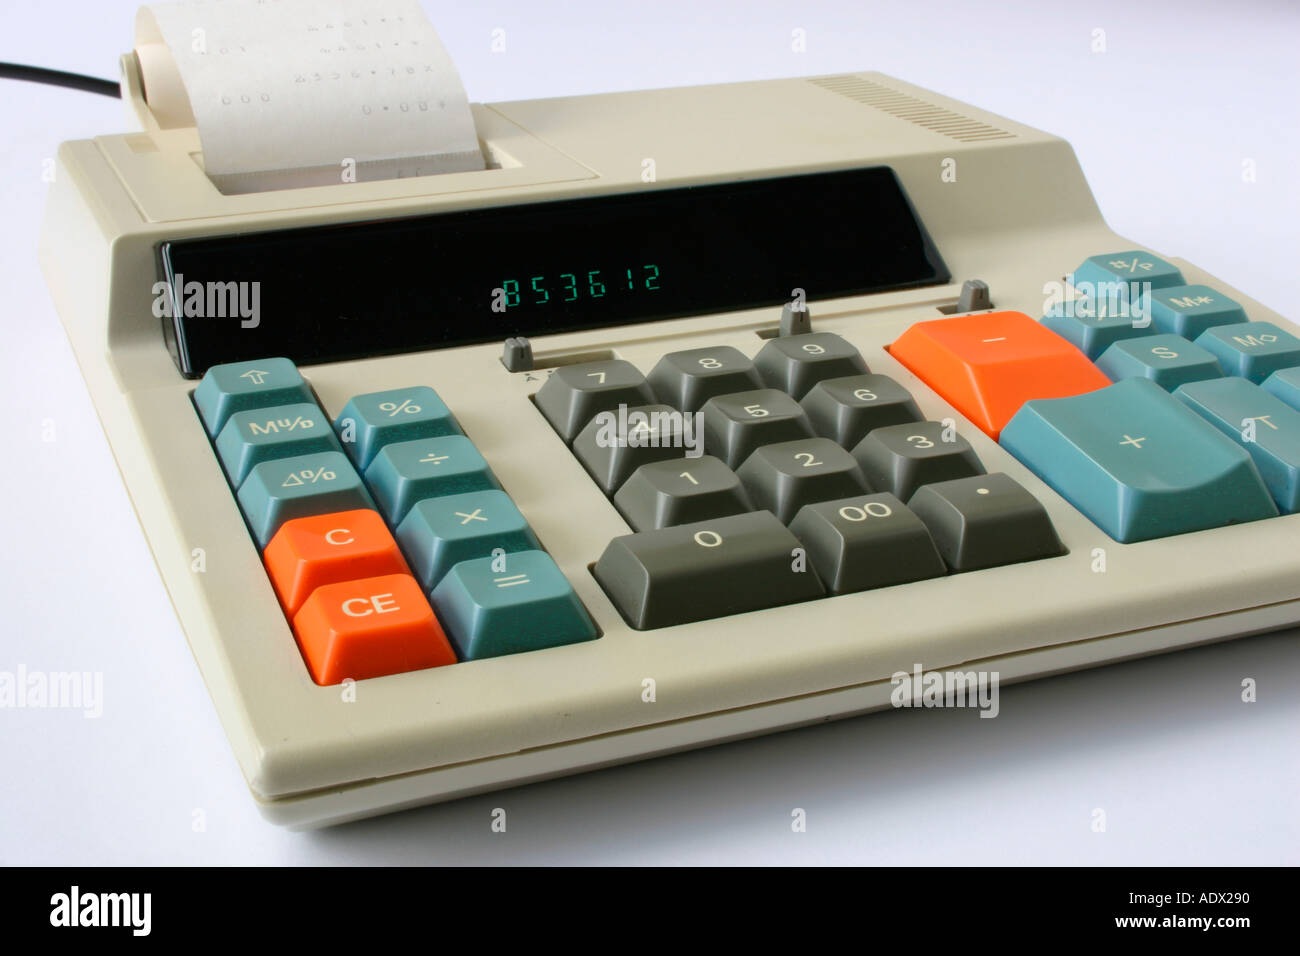 A 1980's Electronic Calculator using a paper roll printout. - Stock Image